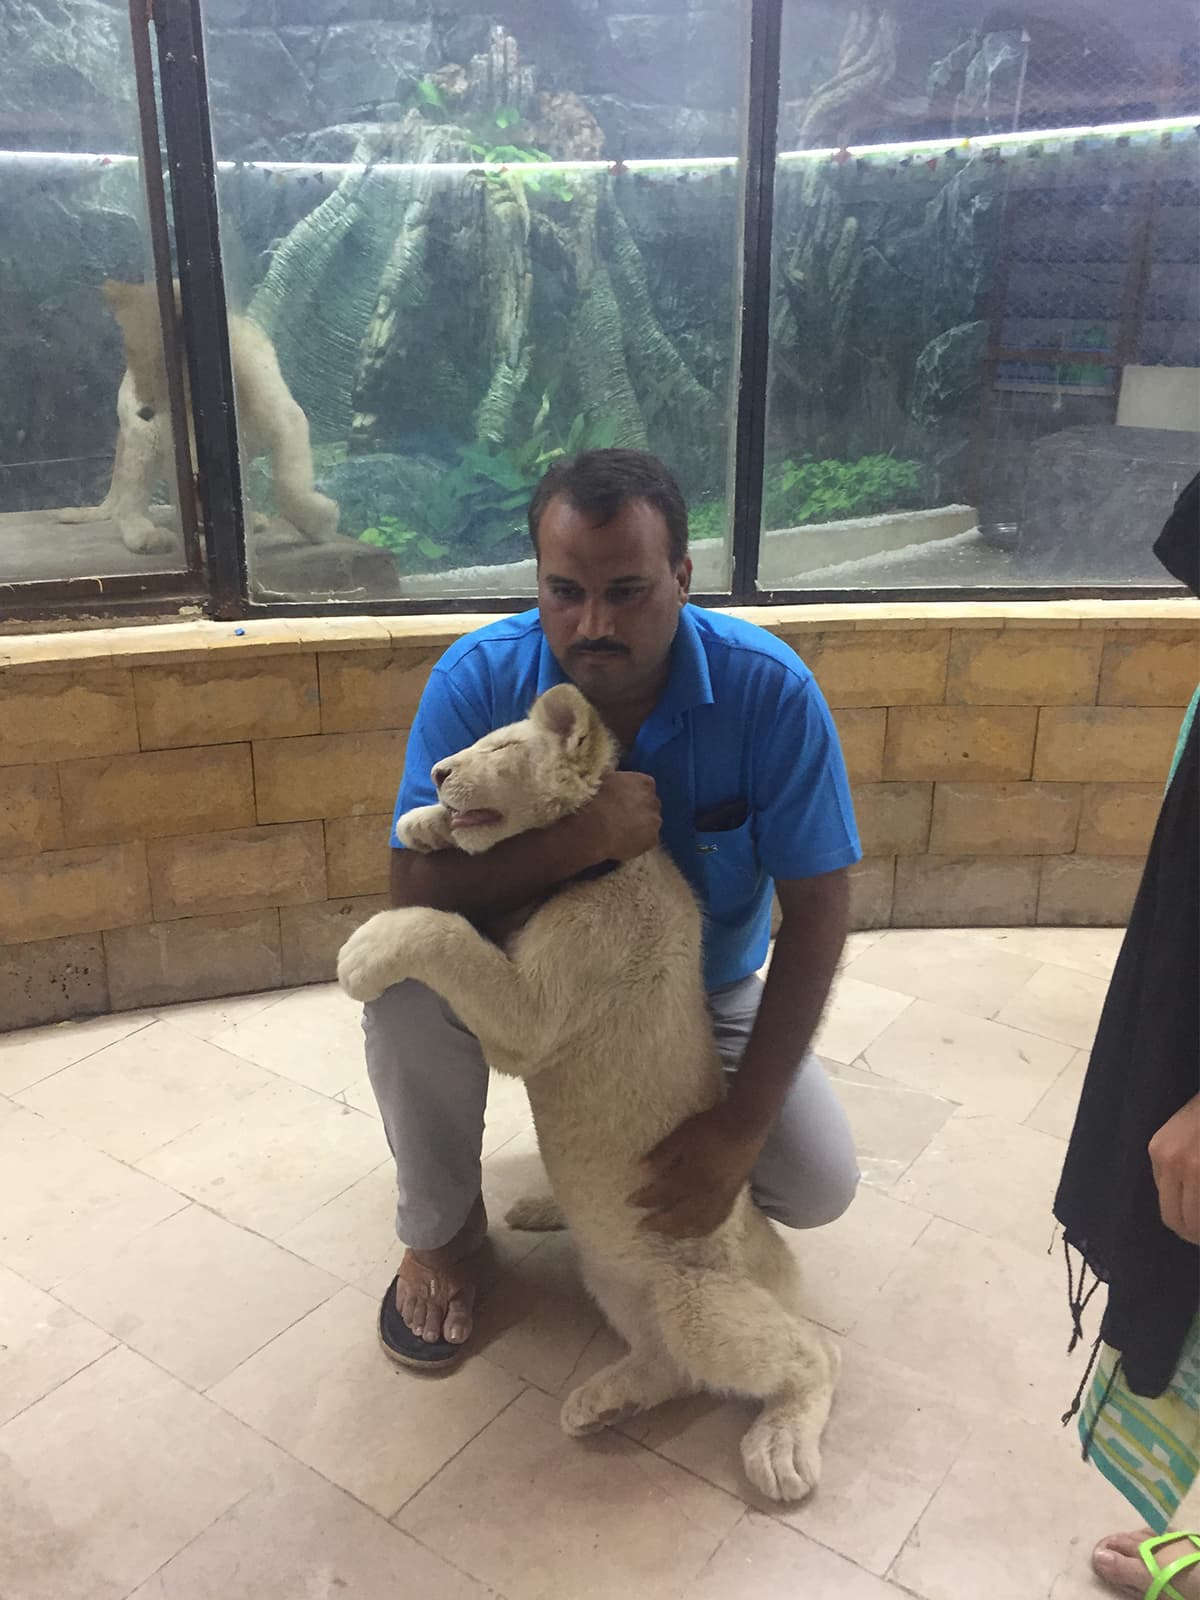 Atif Imtiaz with one of the white lions at the Wildlife Experience Center in Karachi. Photo credit: Haniya Javed